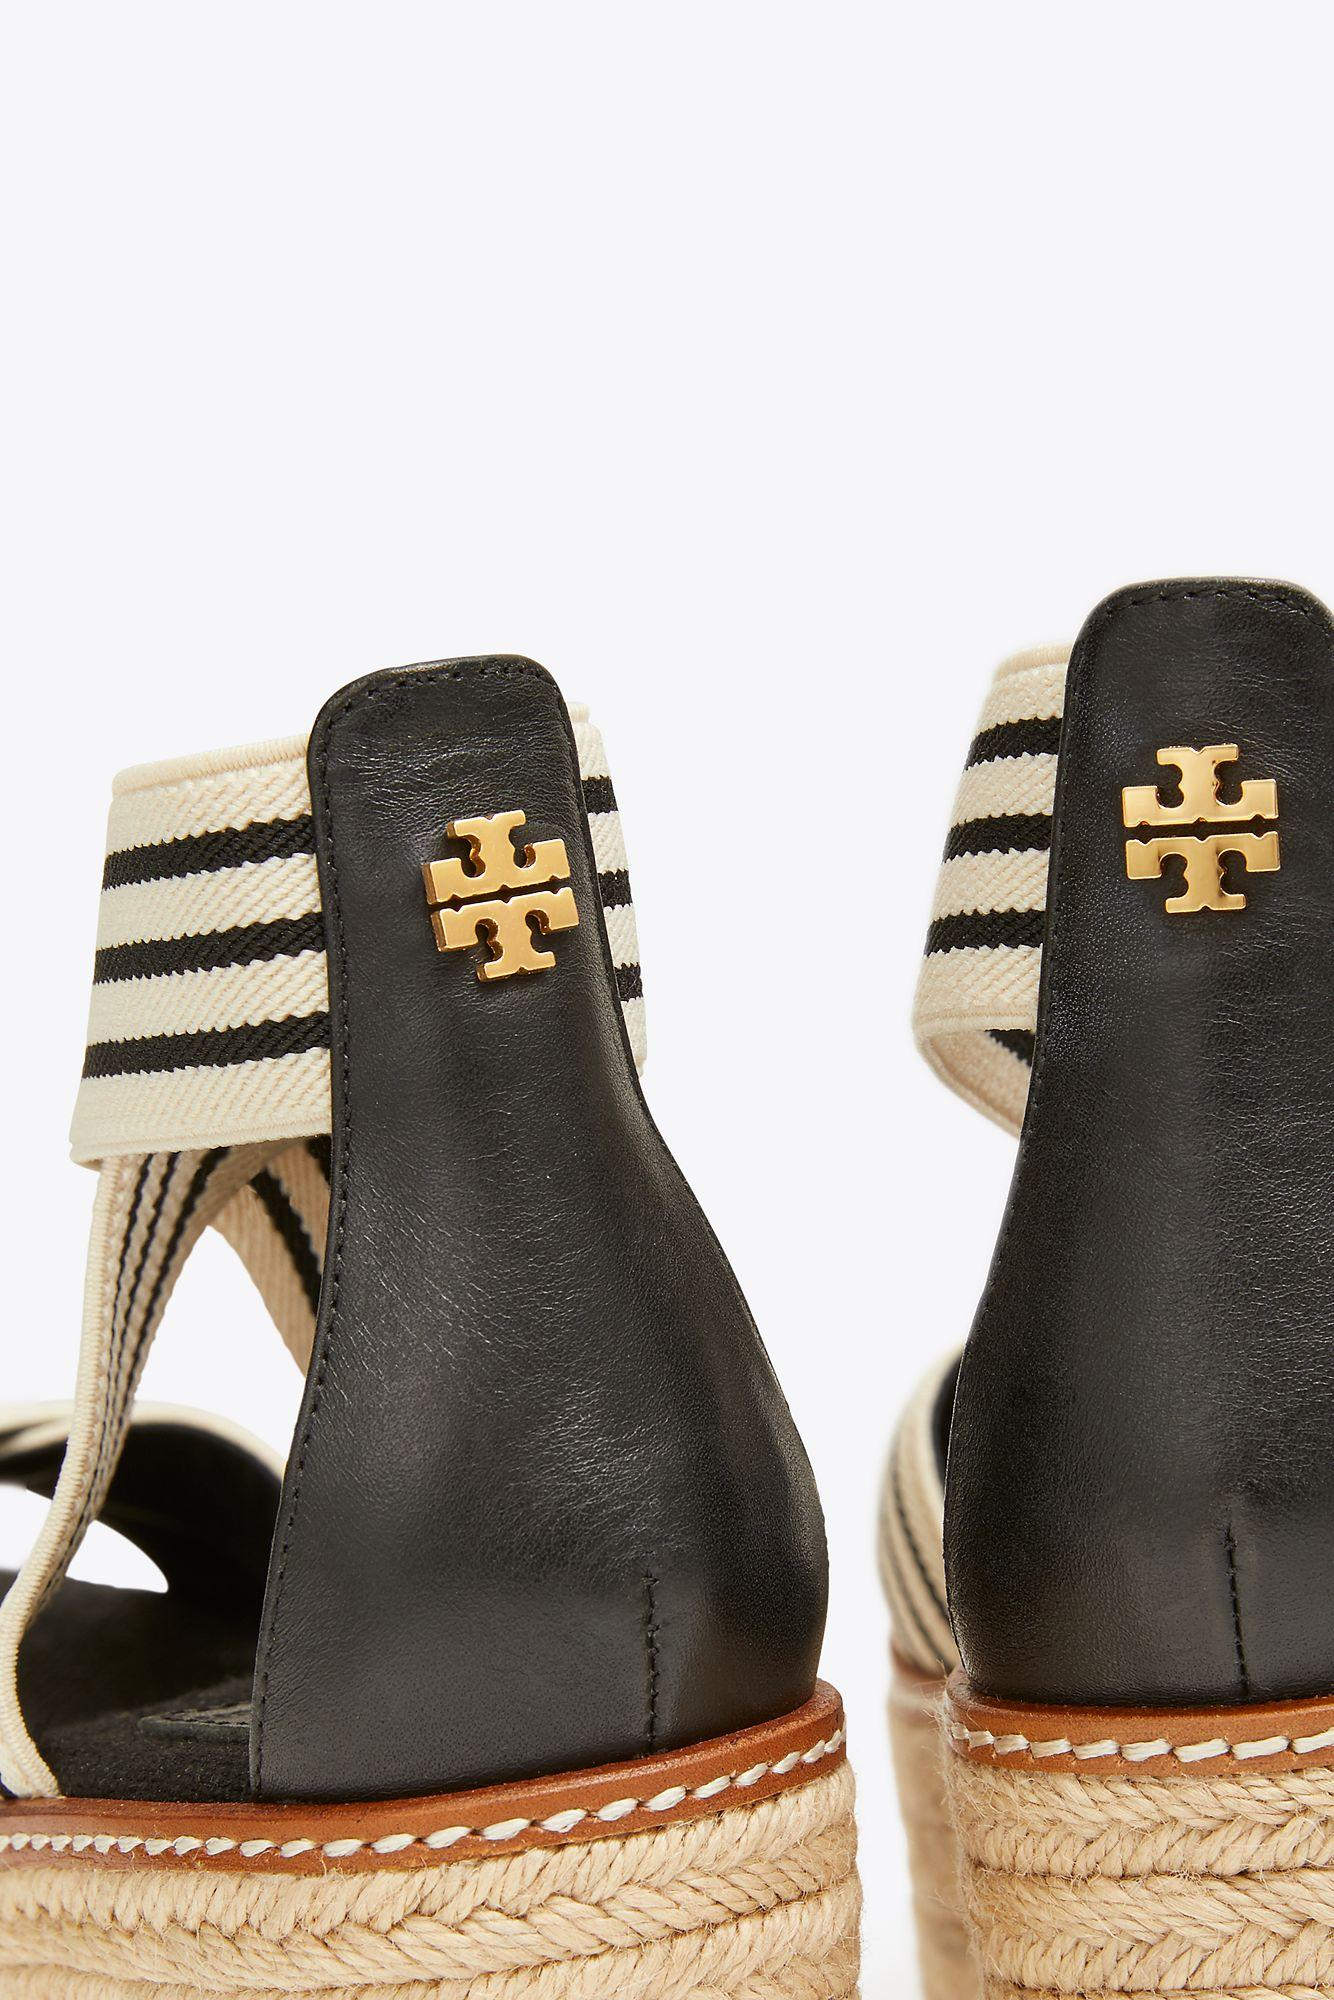 Tory Burch Canvas Frieda Mid Heels Espadrilles Sandals In